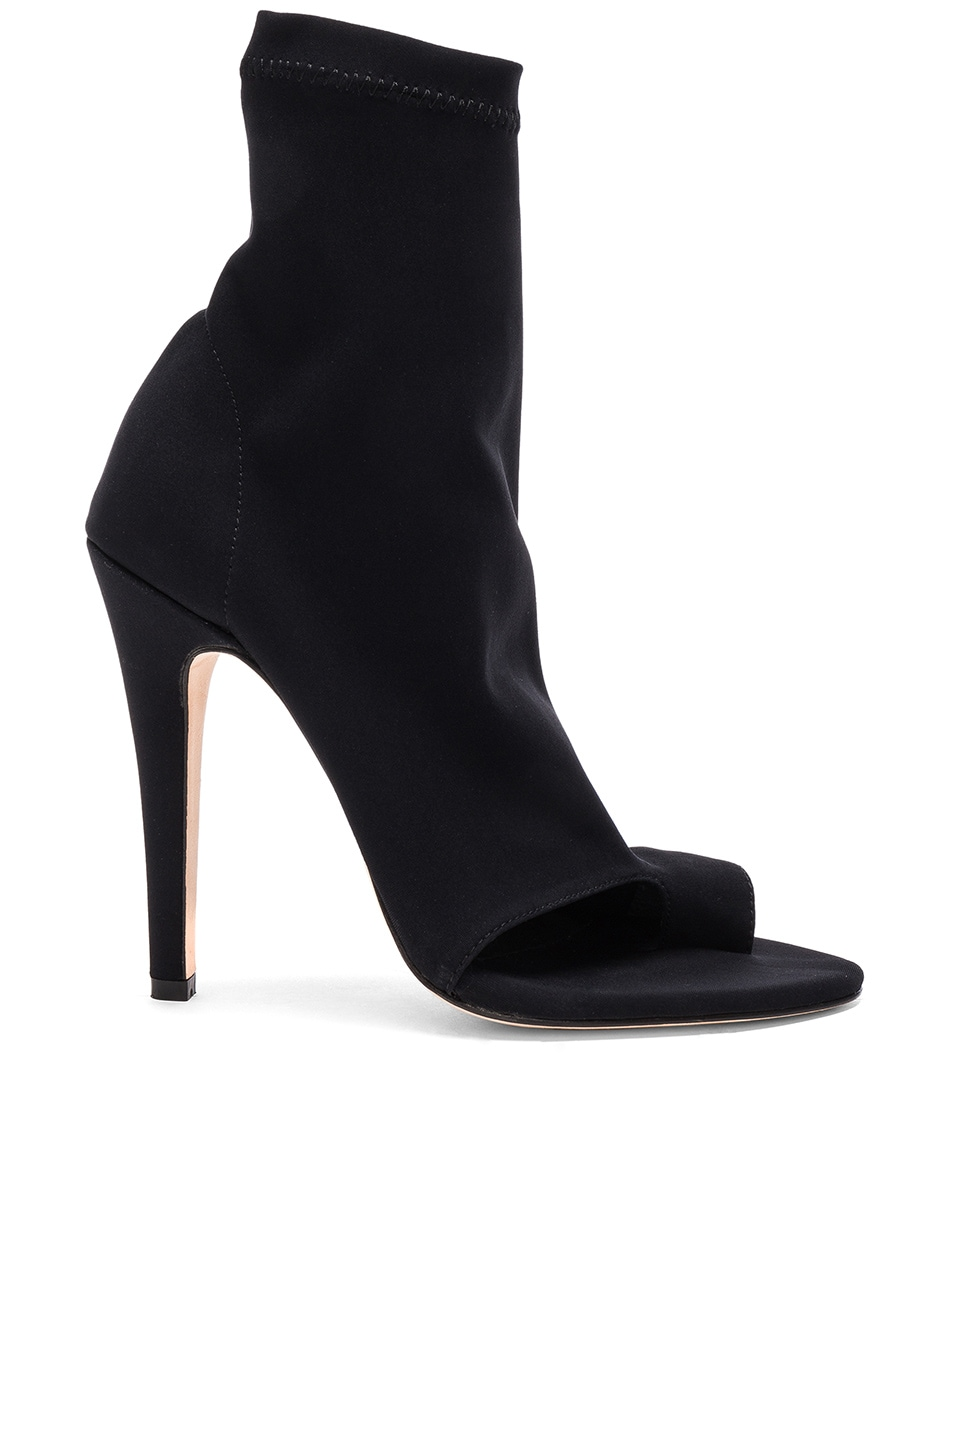 Image 1 of Dion Lee Glove Ankle Booties in Black